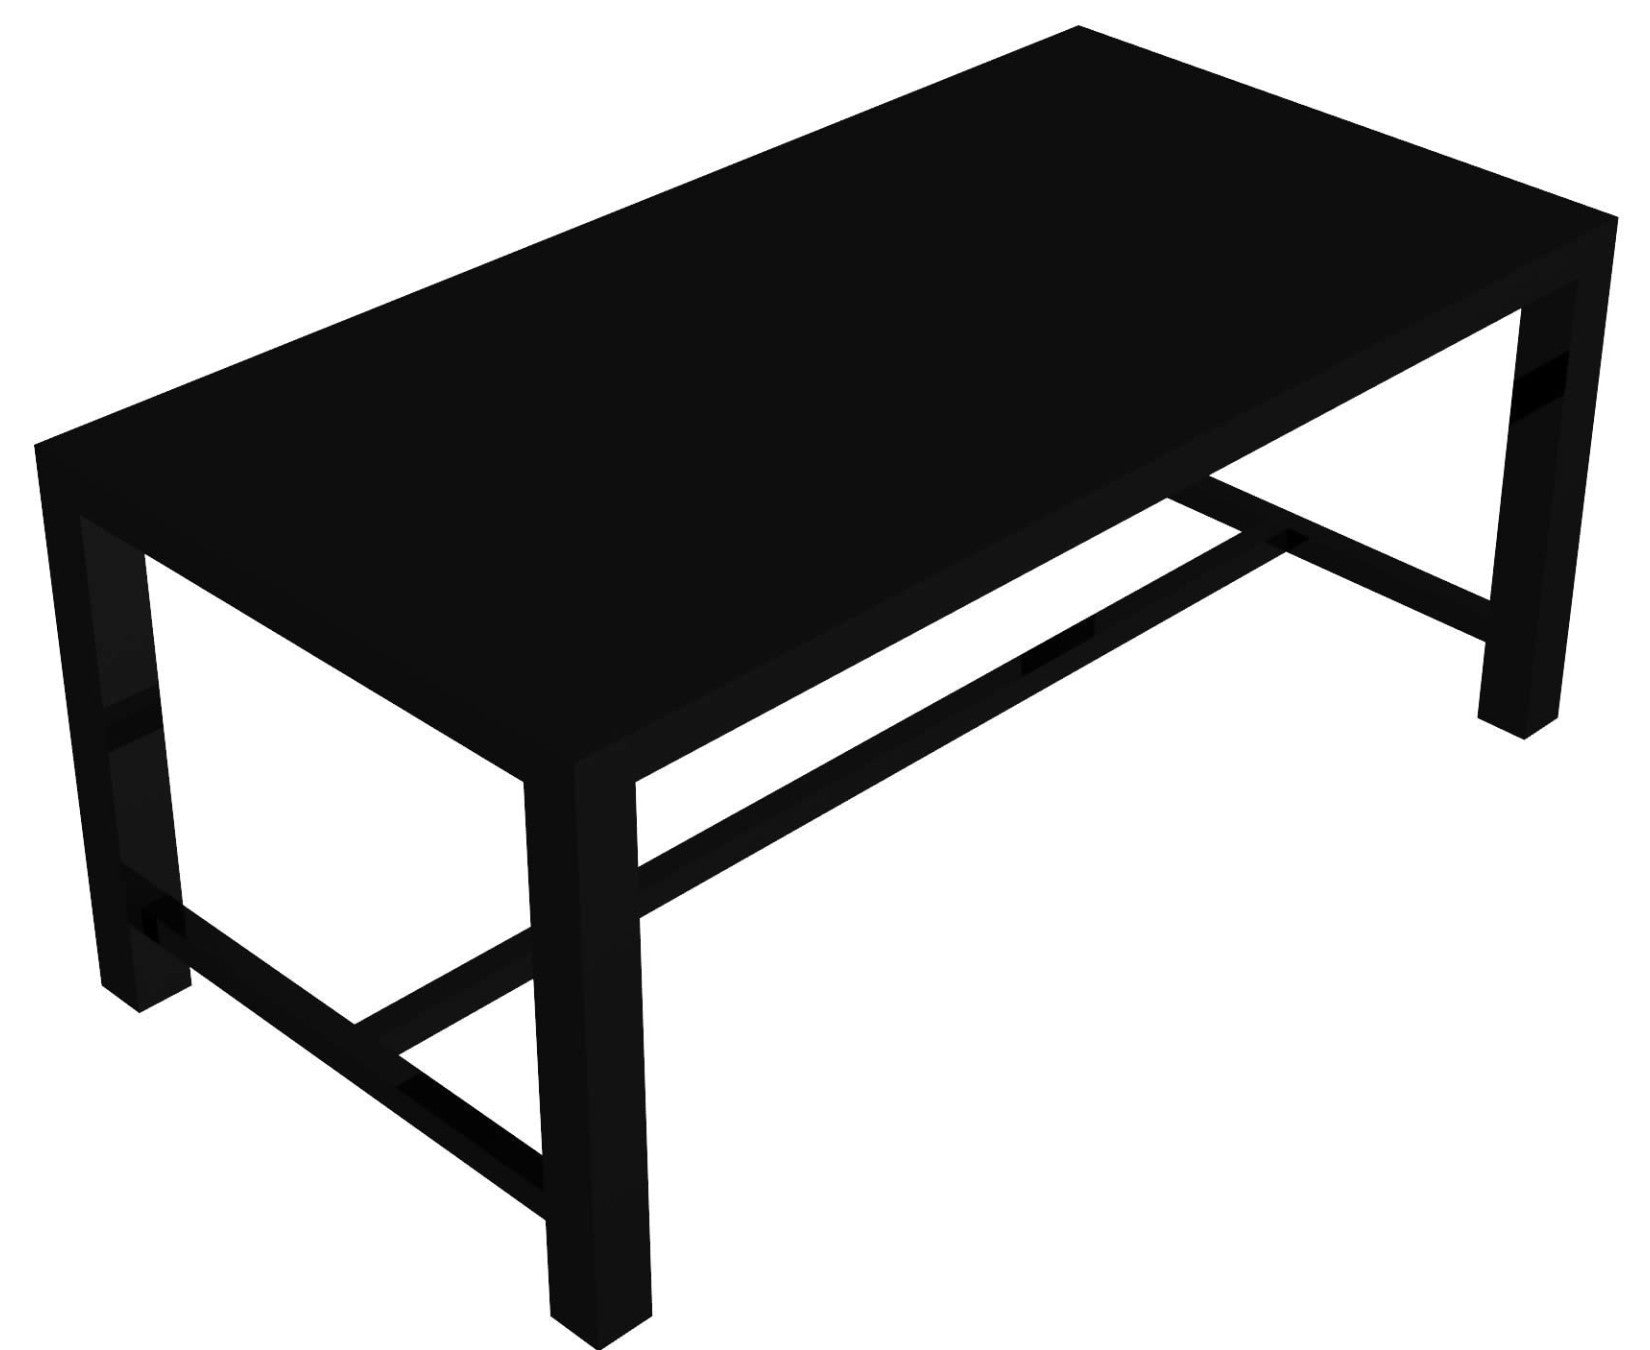 Conrad iron rectangular table, extendable from 93 x 180 to 93 x 280 cm